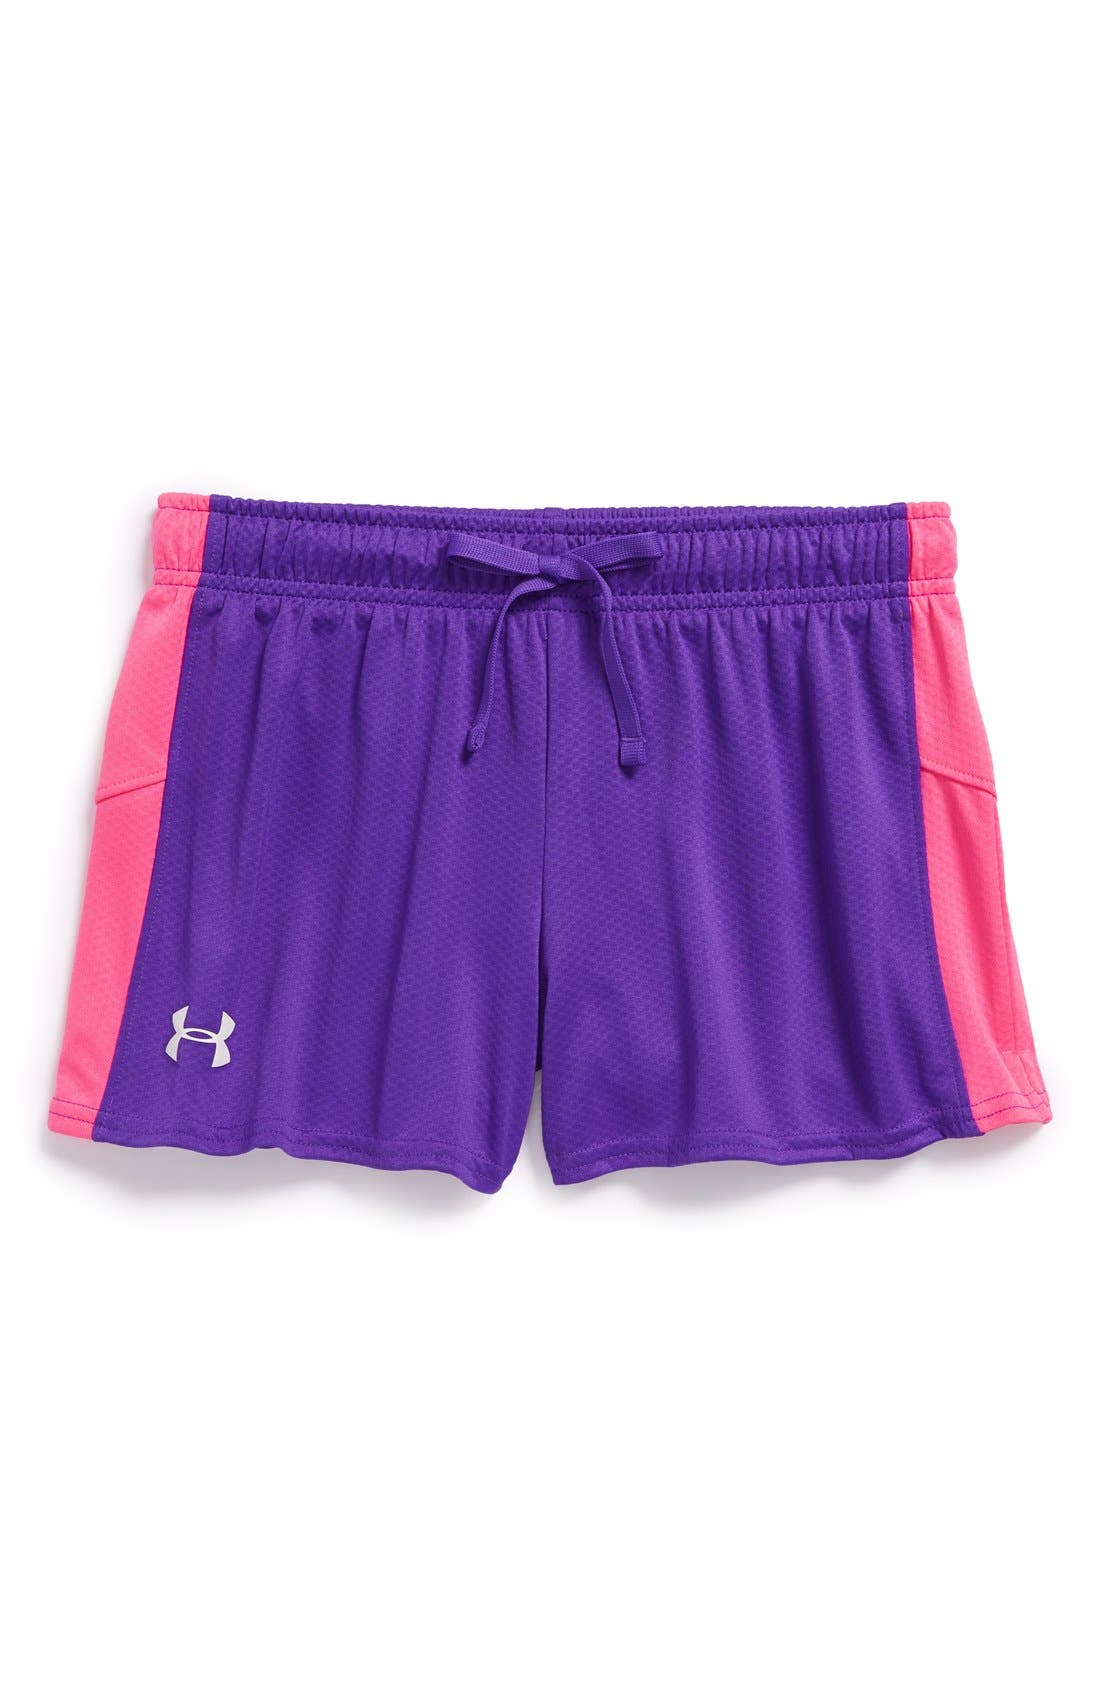 Alternate Image 1 Selected - Under Armour 'Intensity' HeatGear® Shorts (Big Girls)